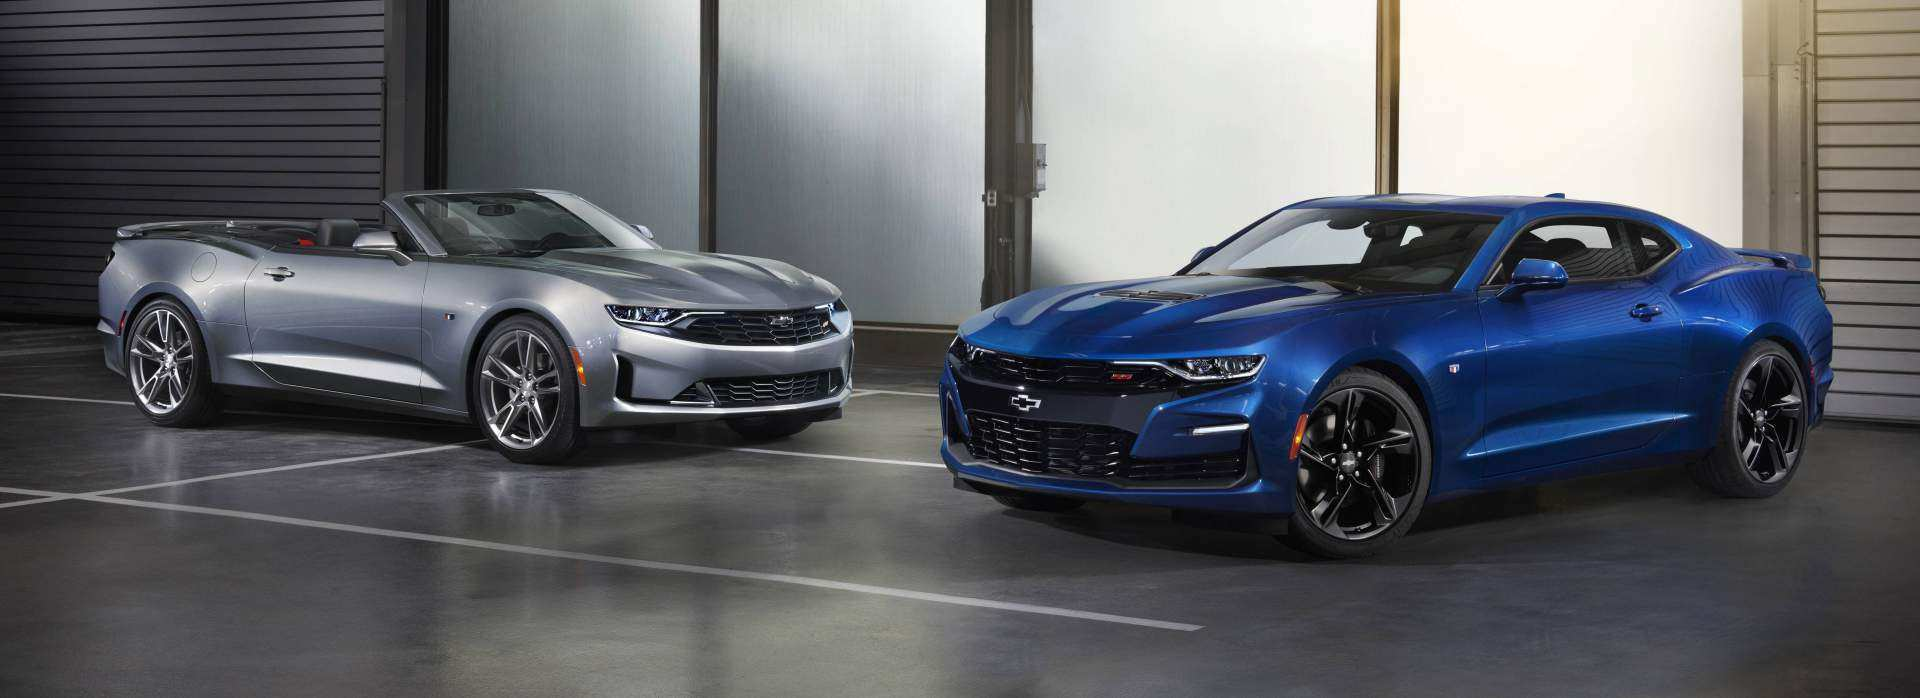 57 The Best 2020 The Camaro Ss Research New